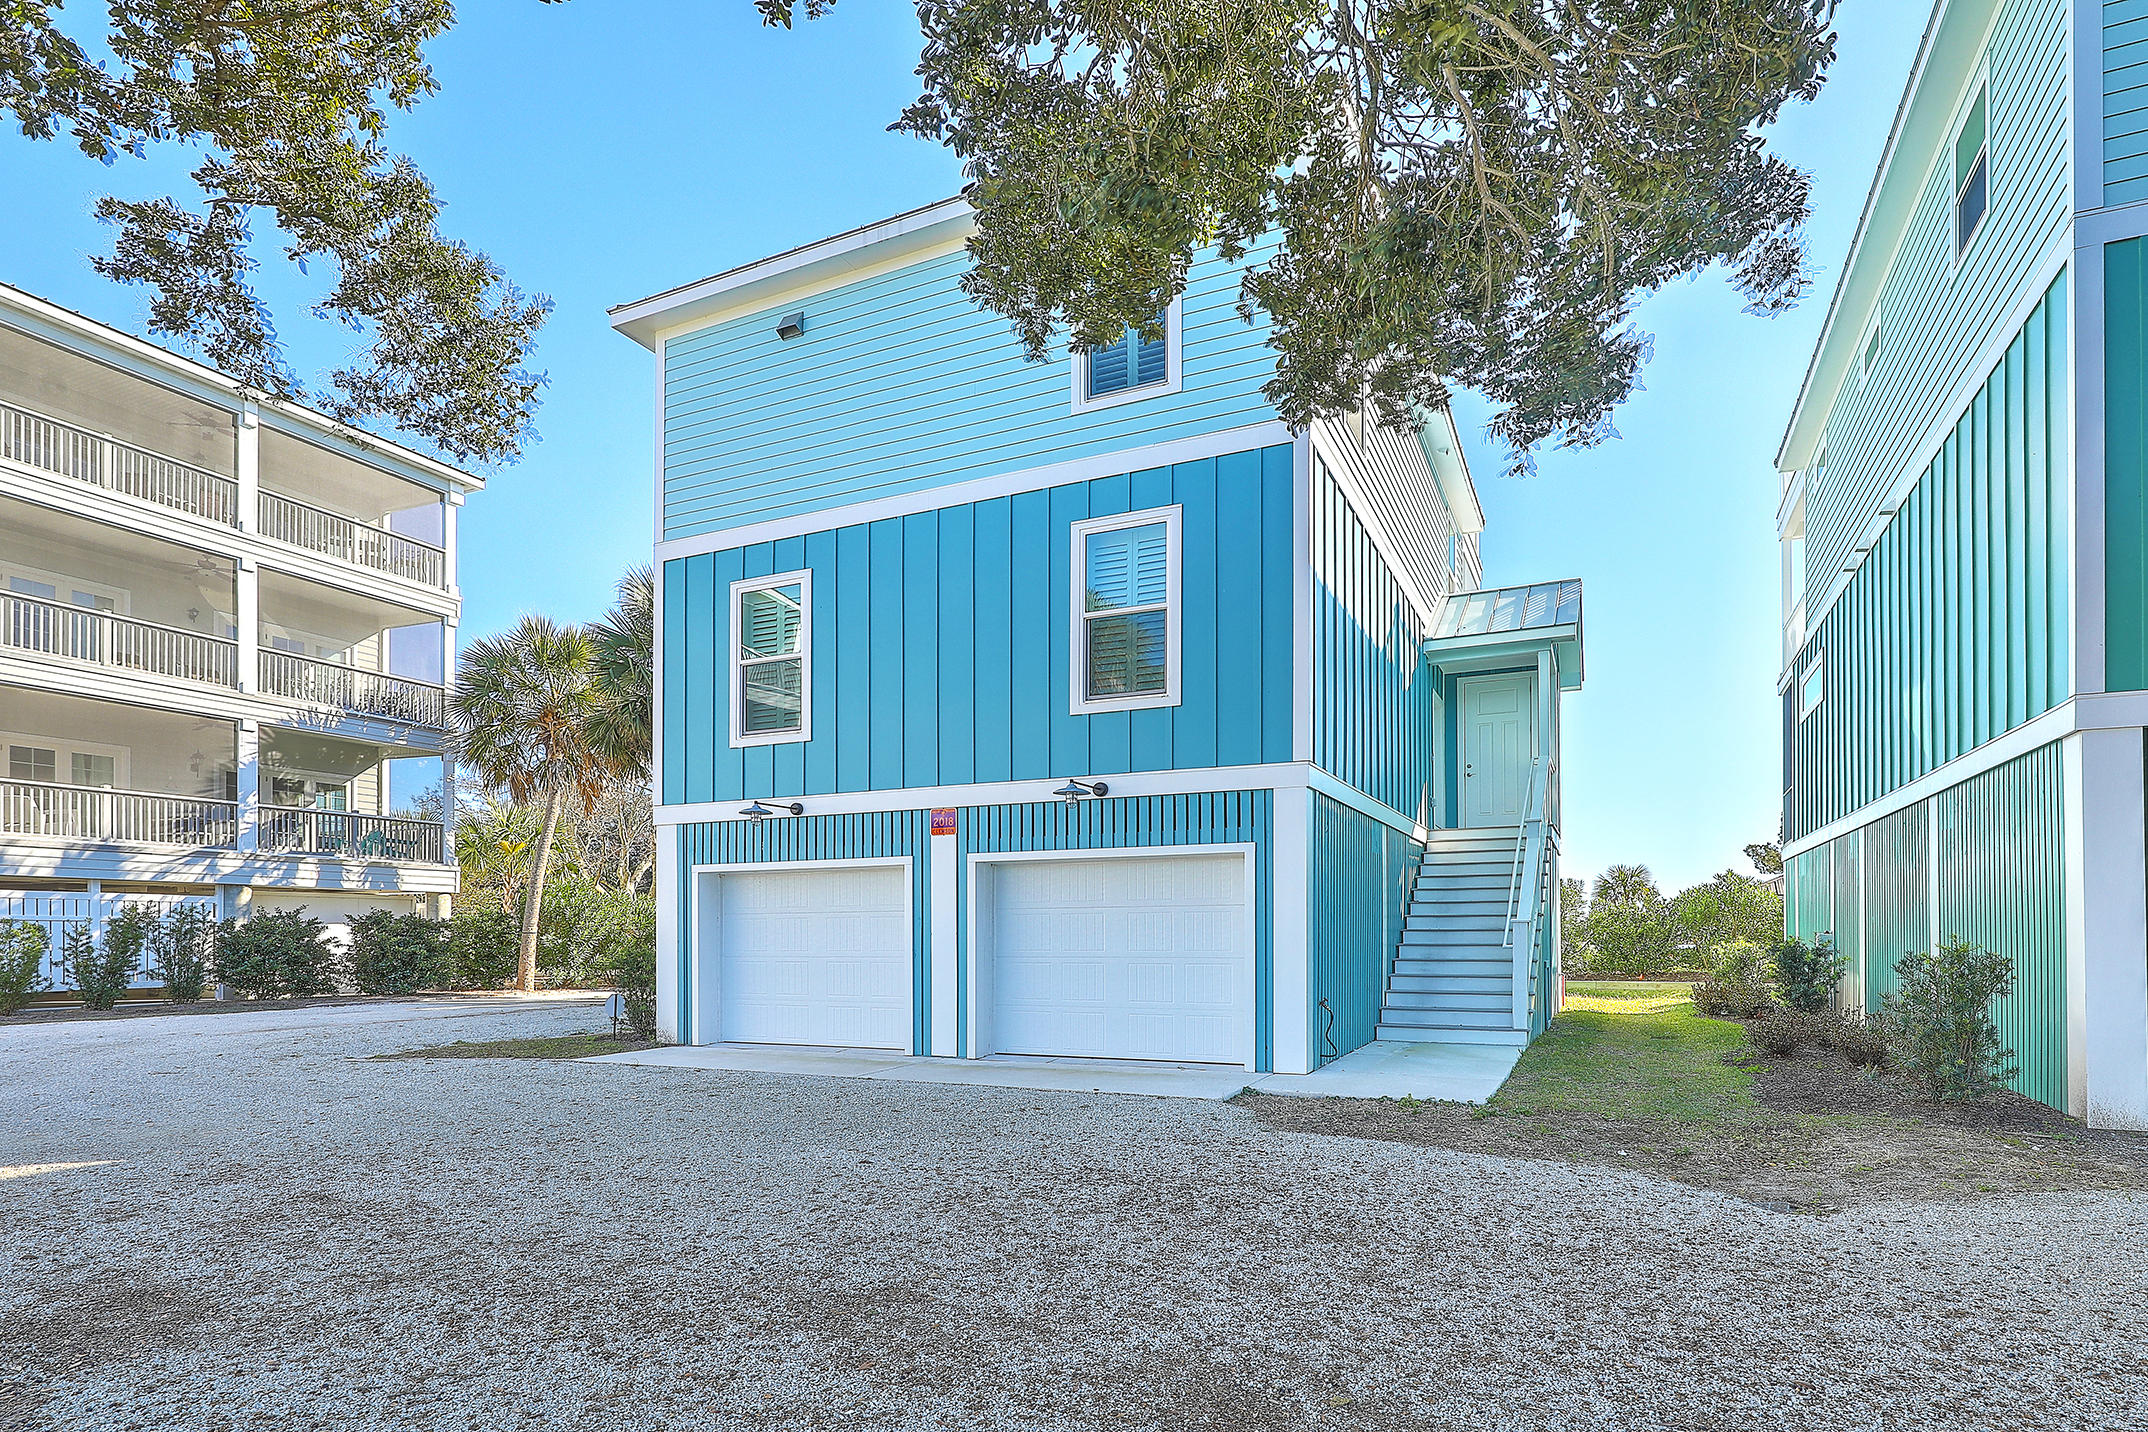 Mariners Cay Homes For Sale - 1002 Mariners Cay, Folly Beach, SC - 10